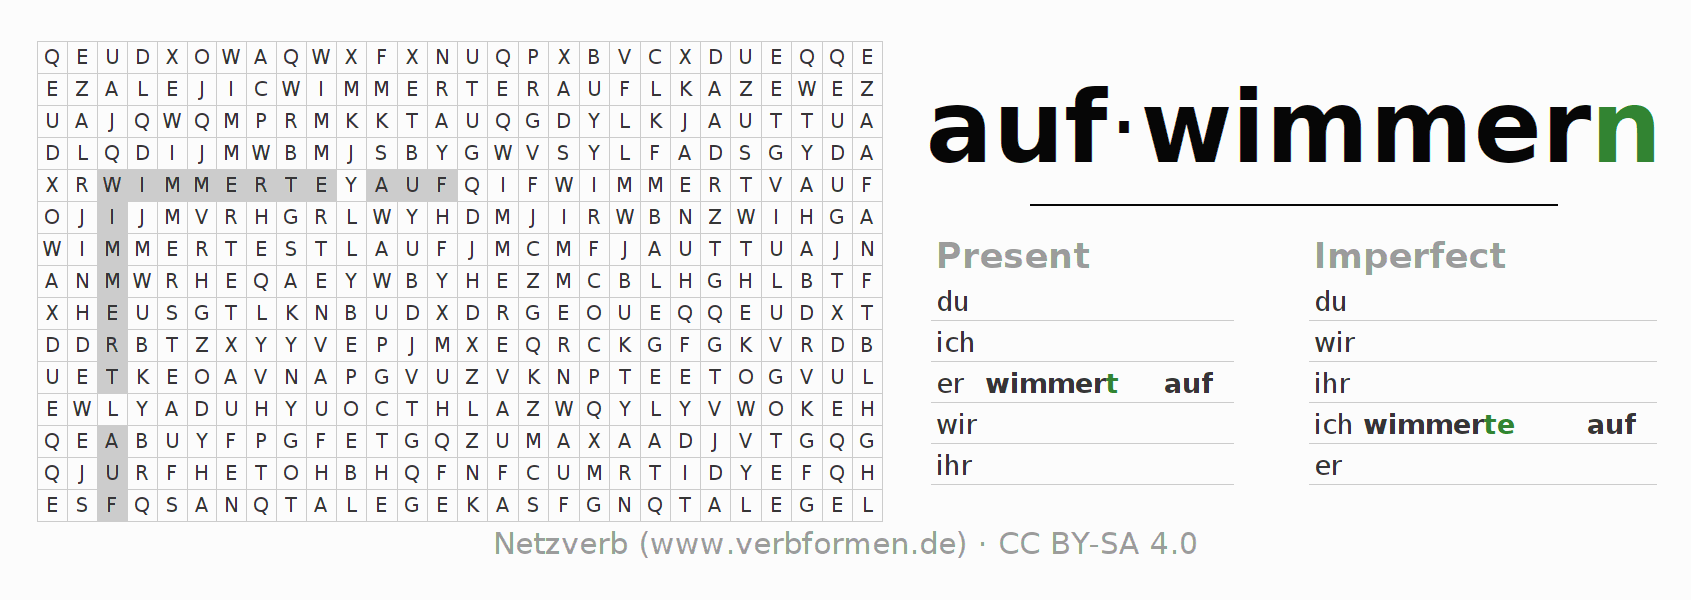 Word search puzzle for the conjugation of the verb aufwimmern